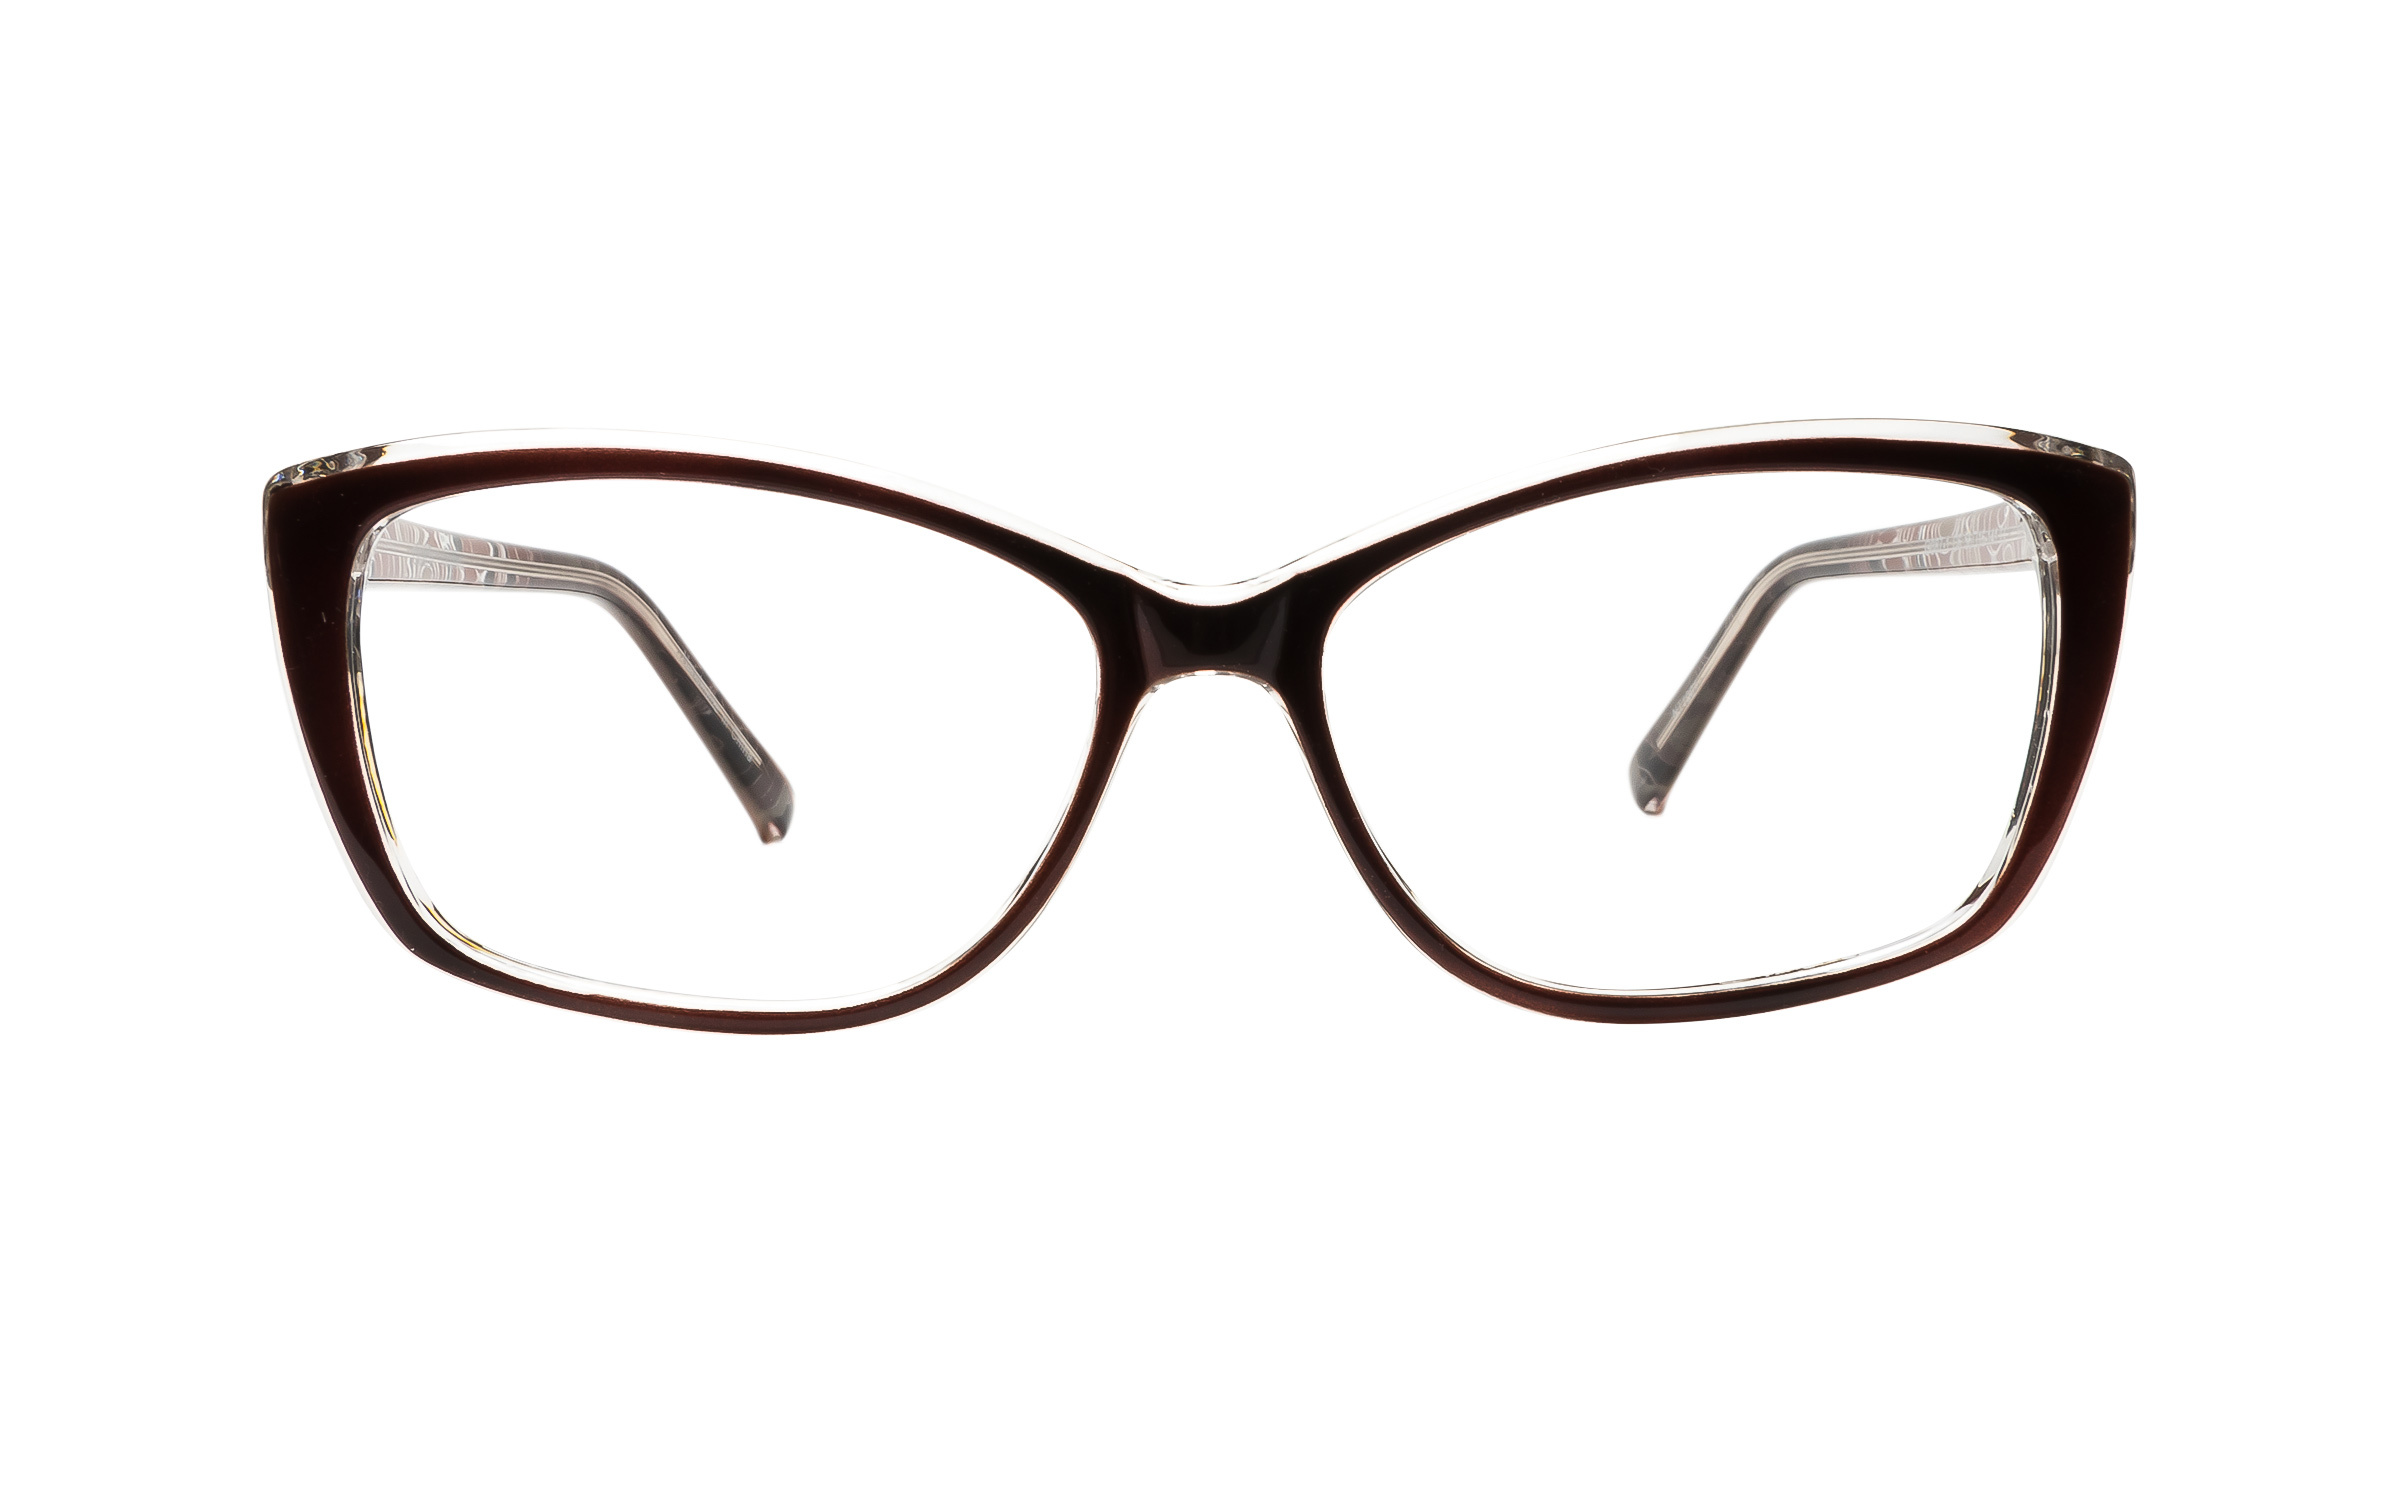 Clearly Basics Pond Inlet G087-1 C6 (56) Eyeglasses and Frame in Brown | Plastic